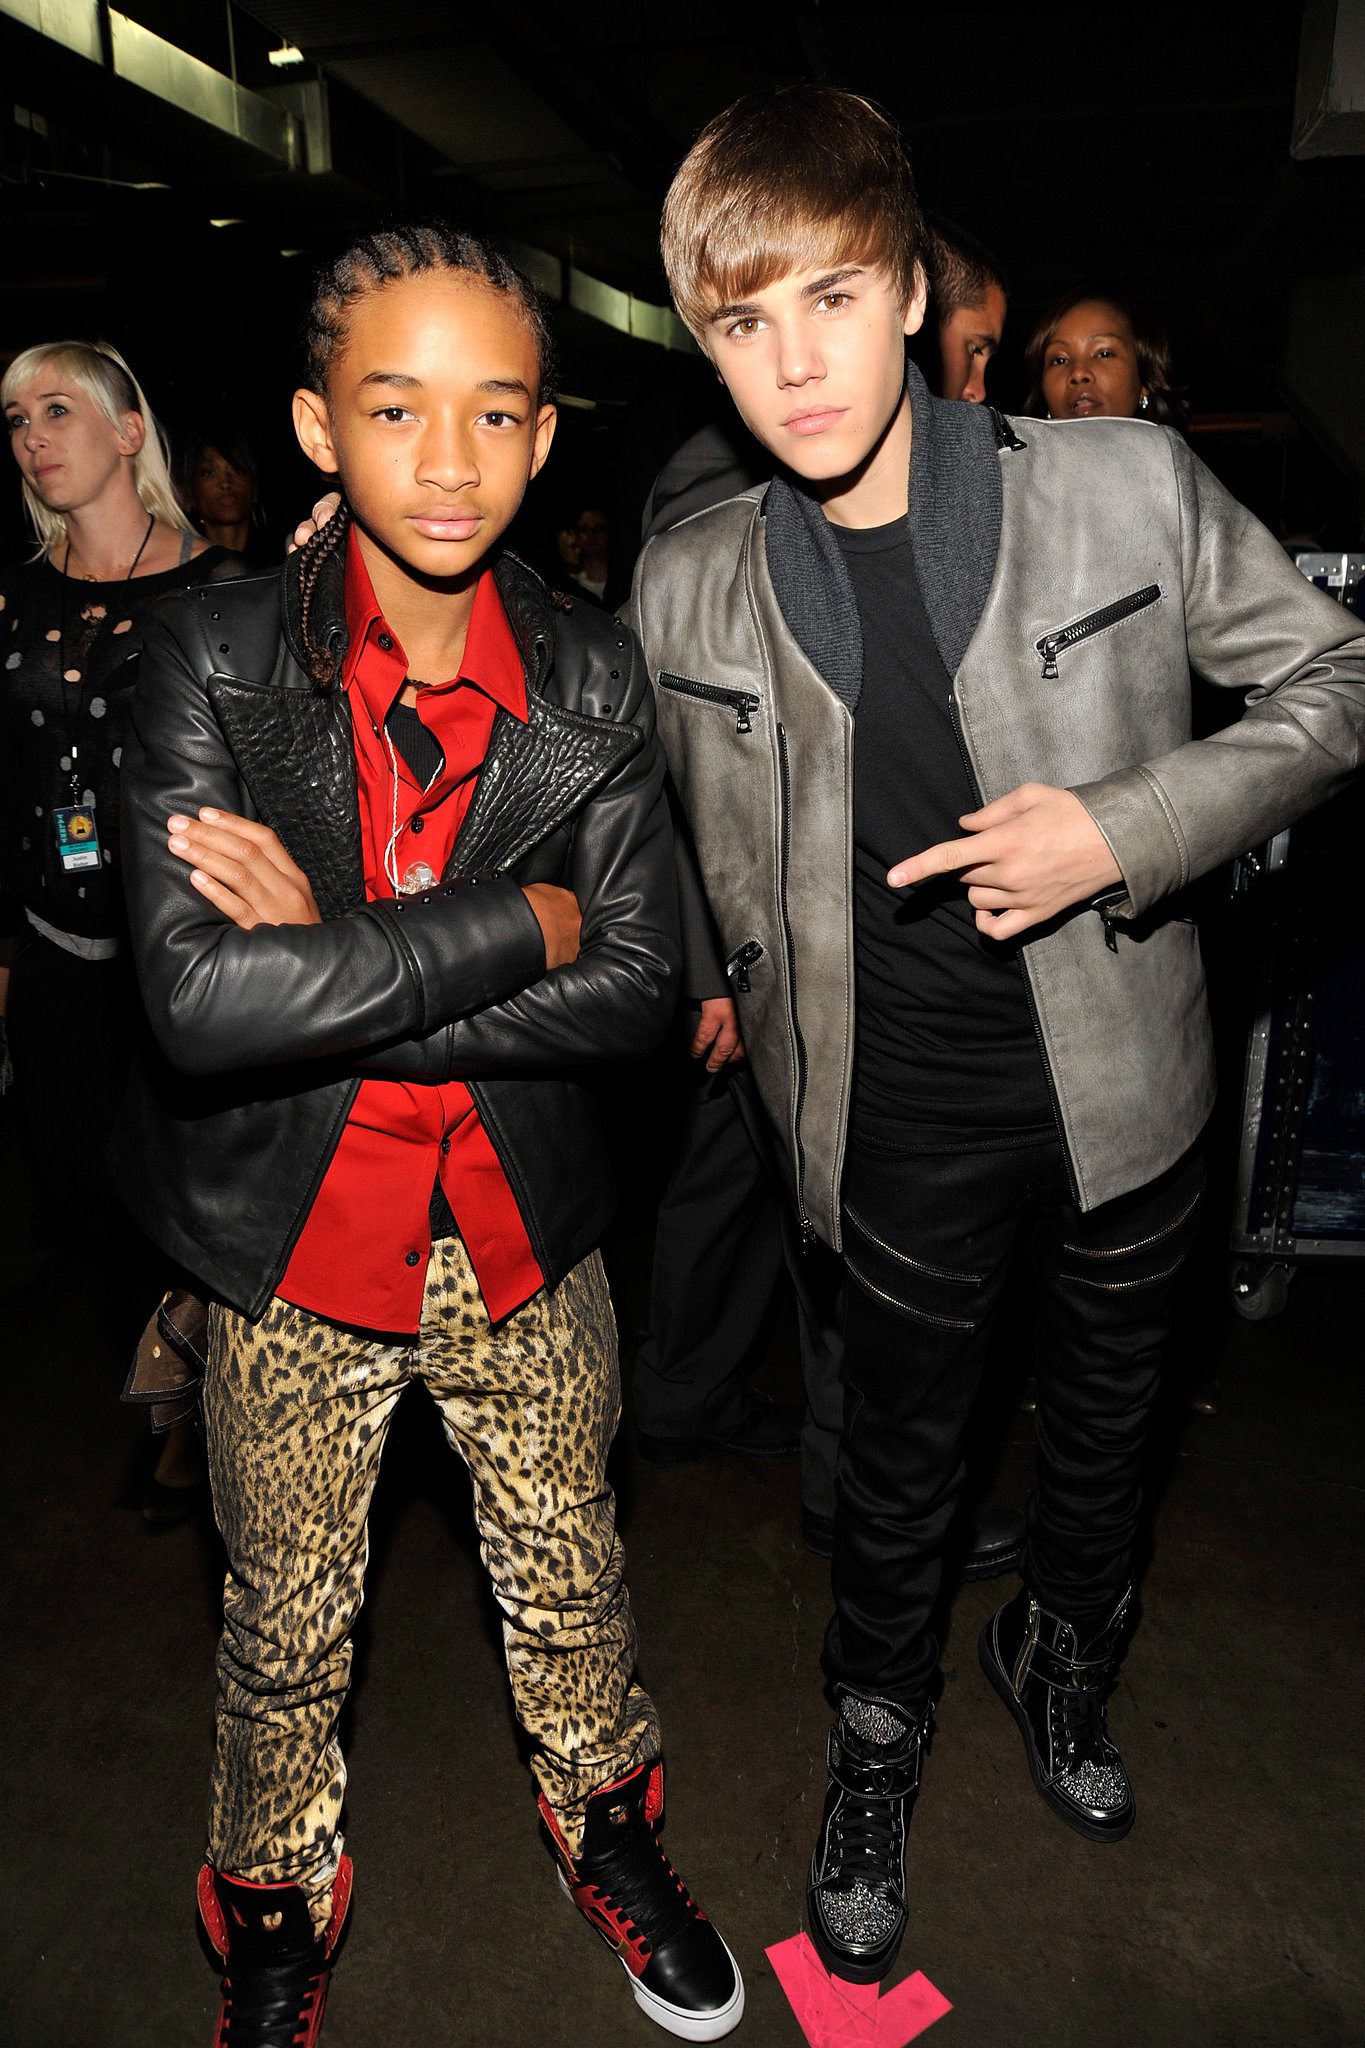 Justin Bieber and Jaden Smith are both talented youn